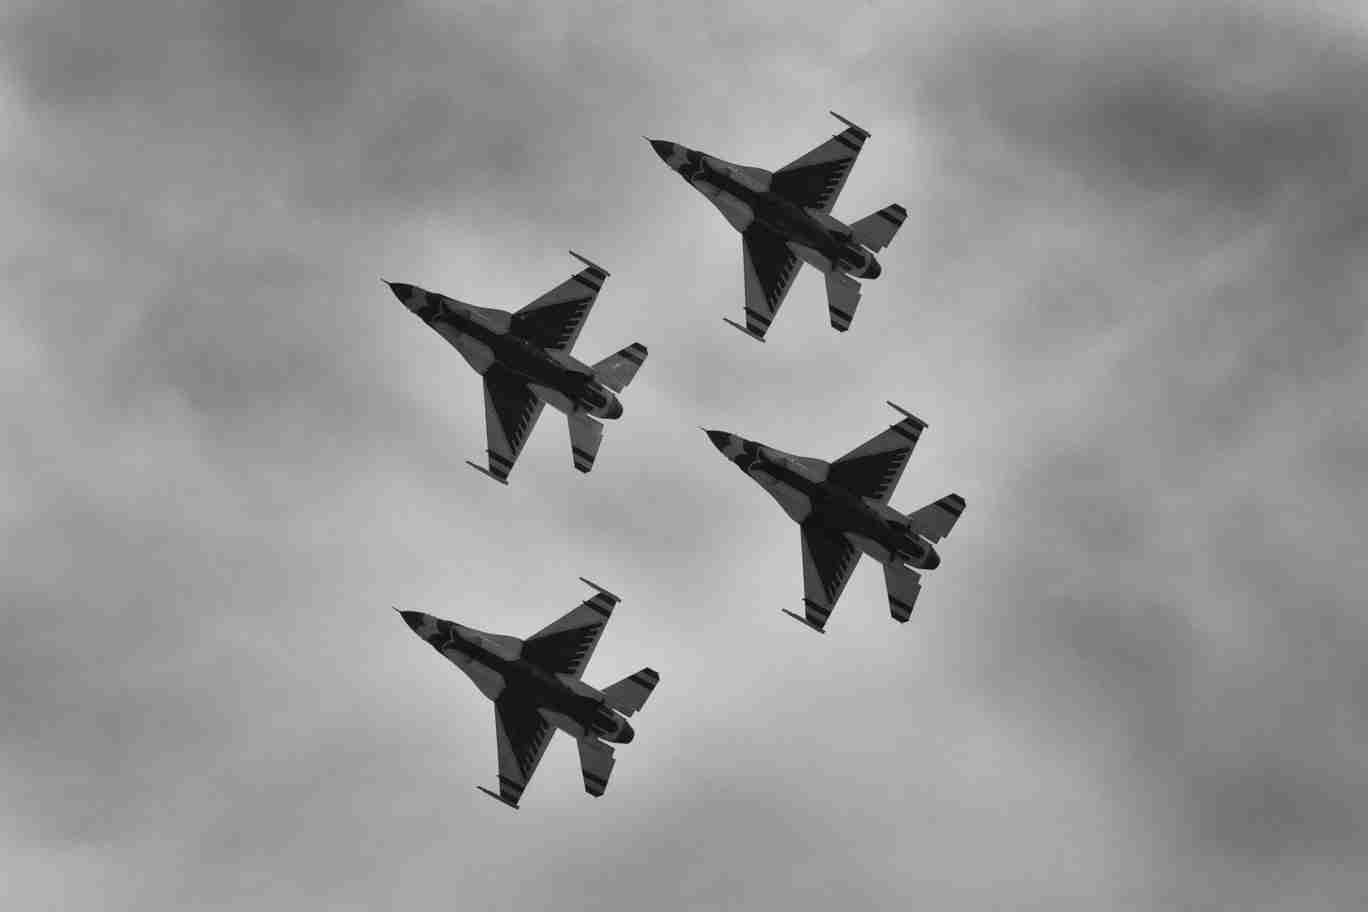 Black & White Photo of Air Force Thunderbird F-16s Flying Overhead